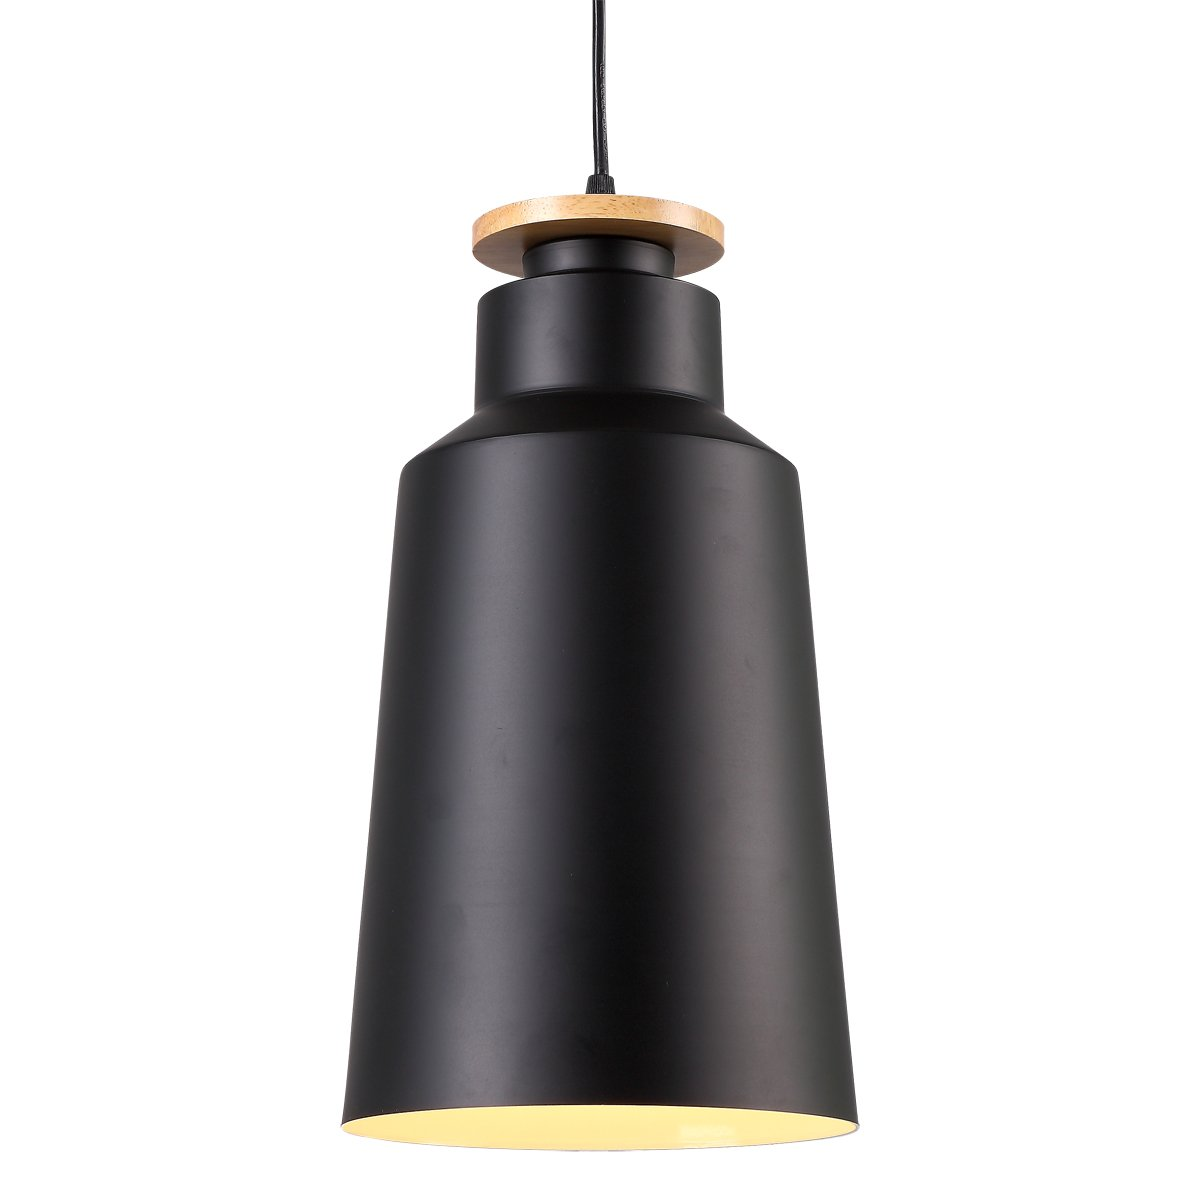 Homiforce vintage style 1 light large black dome pendant light with metal shade in matte black finish modern industrial edison style cl2017073 close